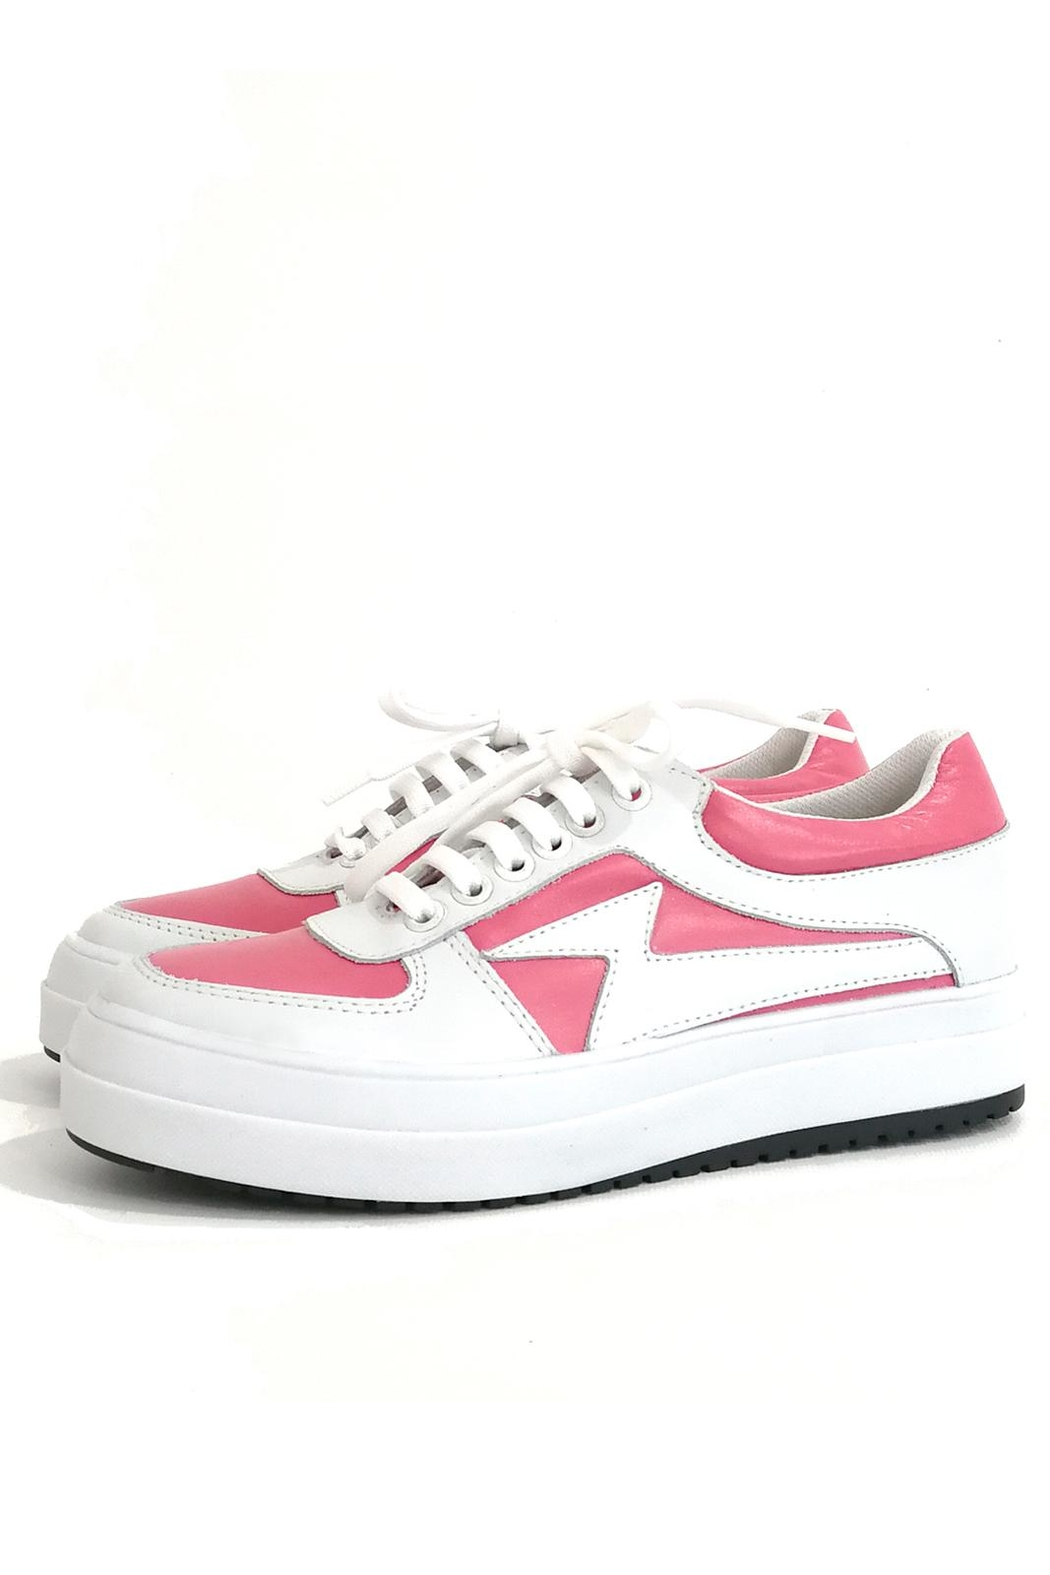 MIYE COLLAZZO Pink Malva Sneaker - Front Cropped Image